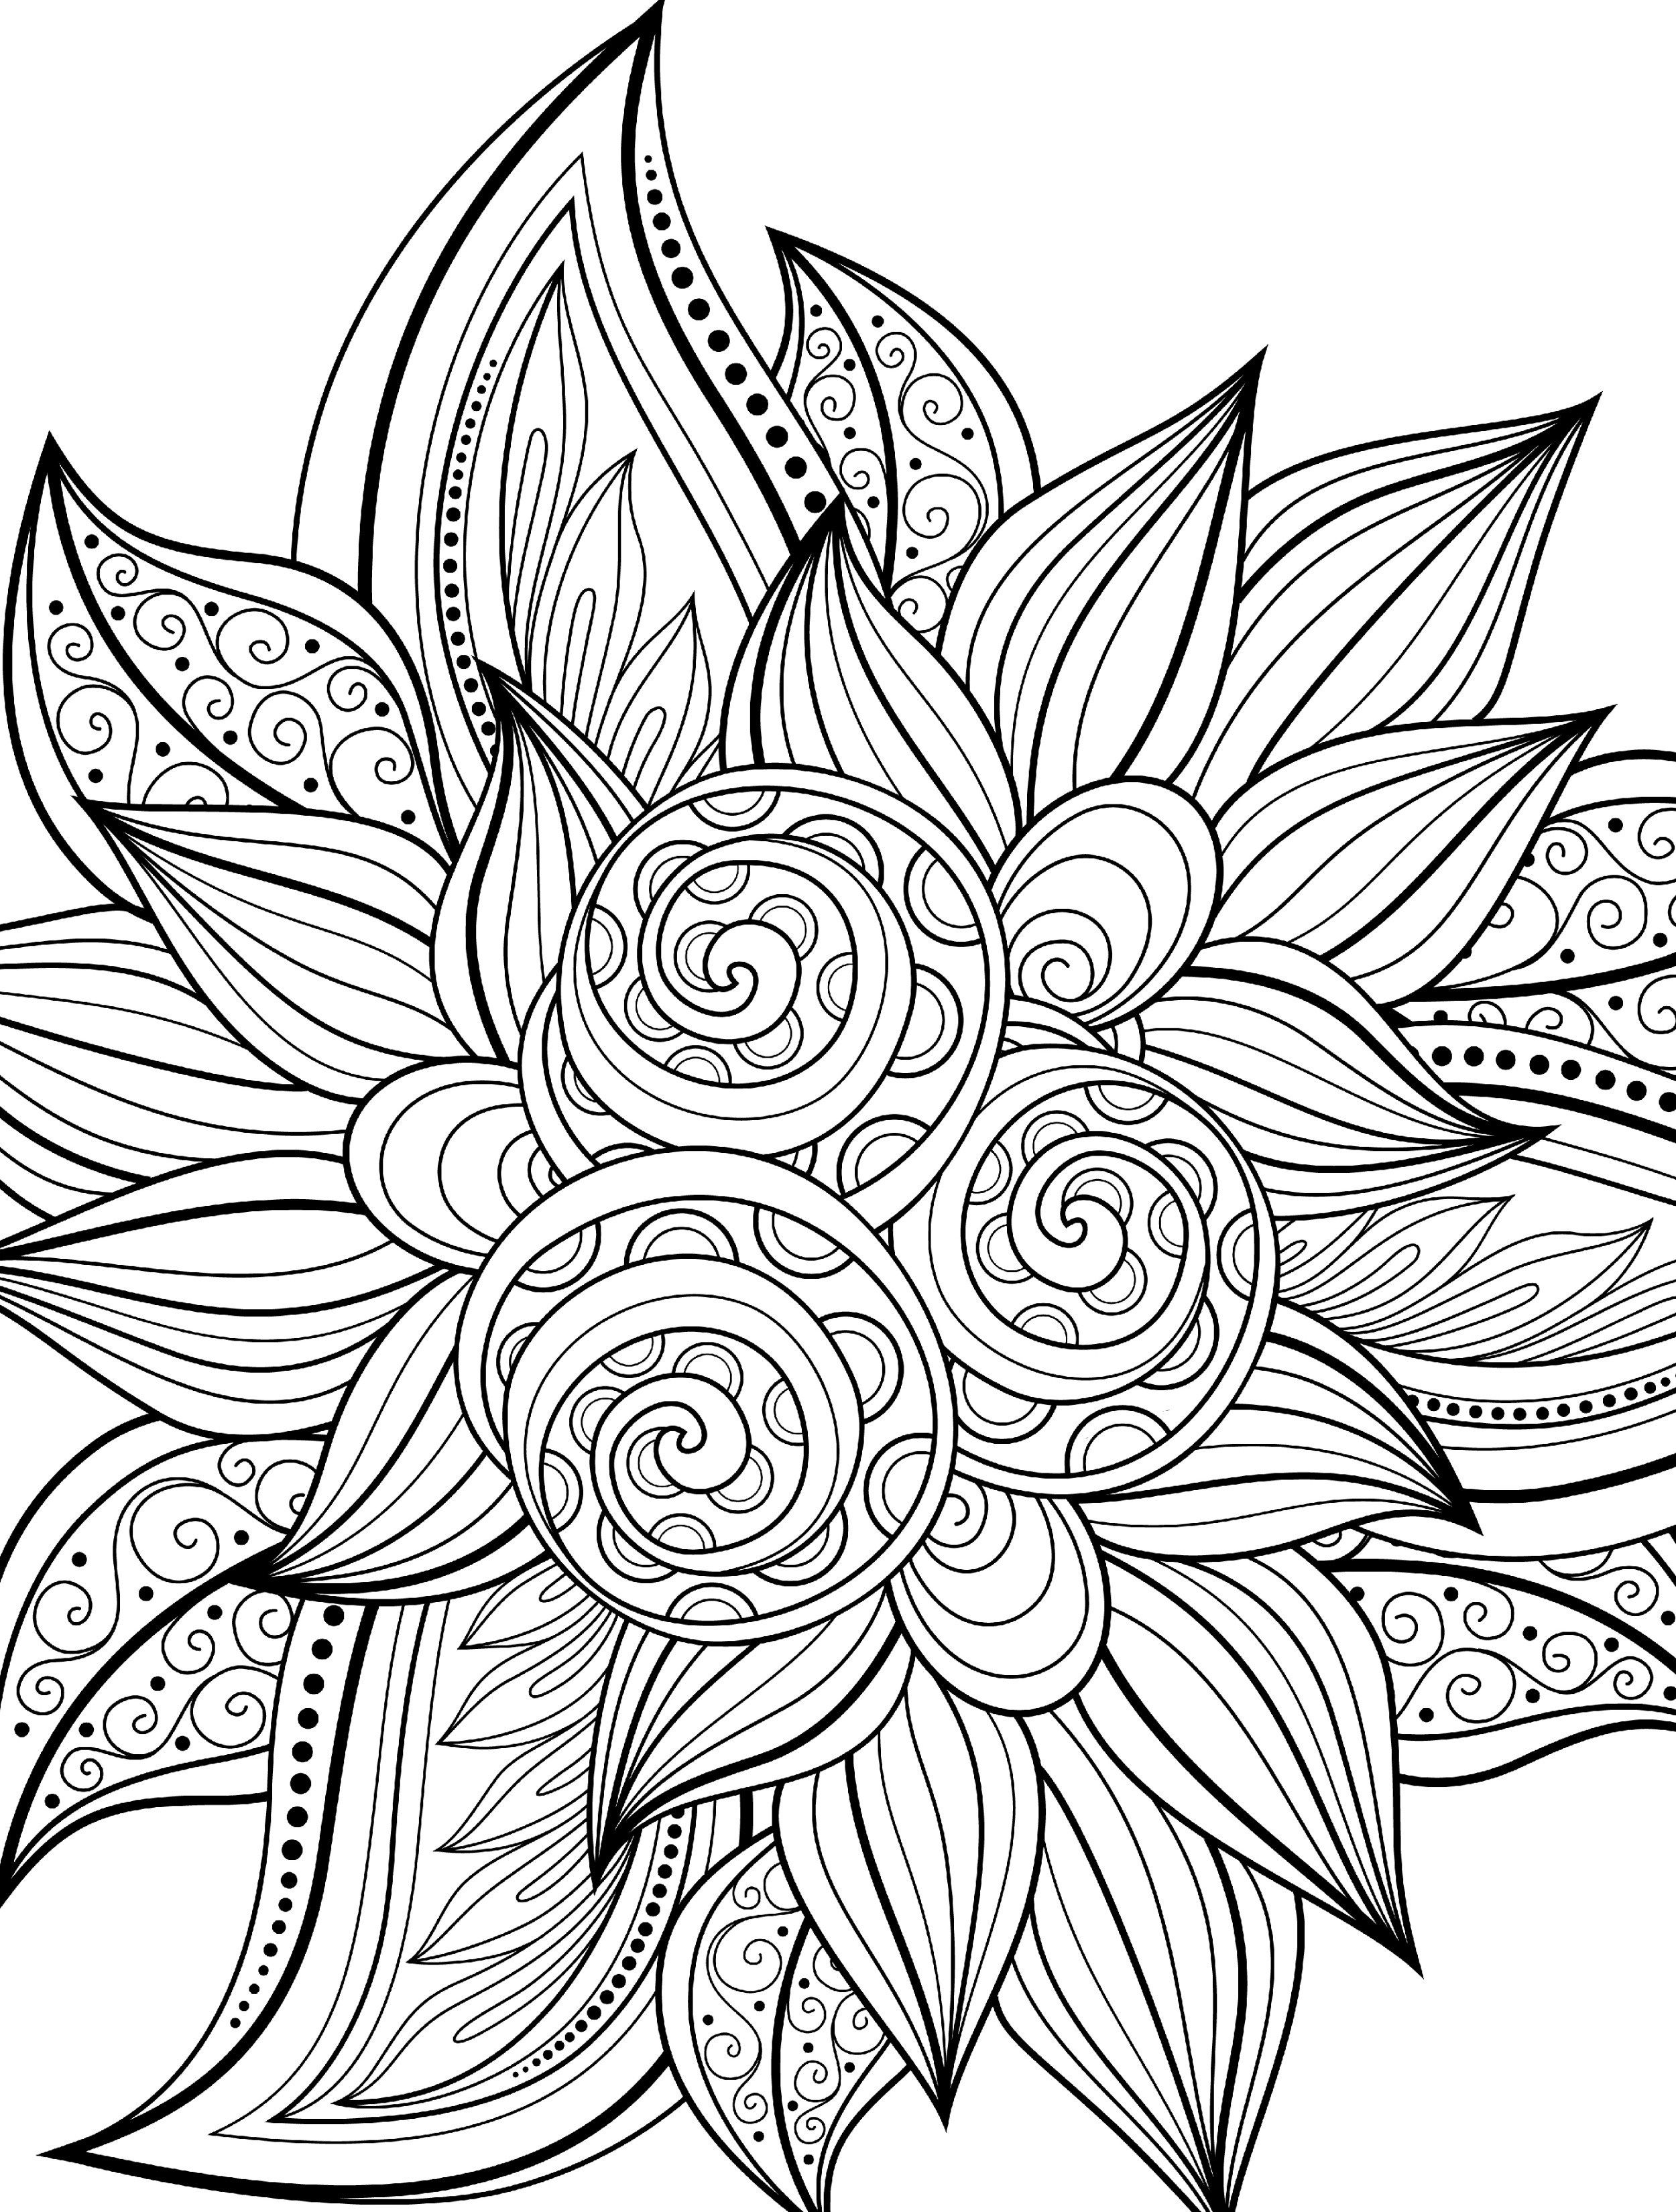 large coloring pages for adults - photo#28